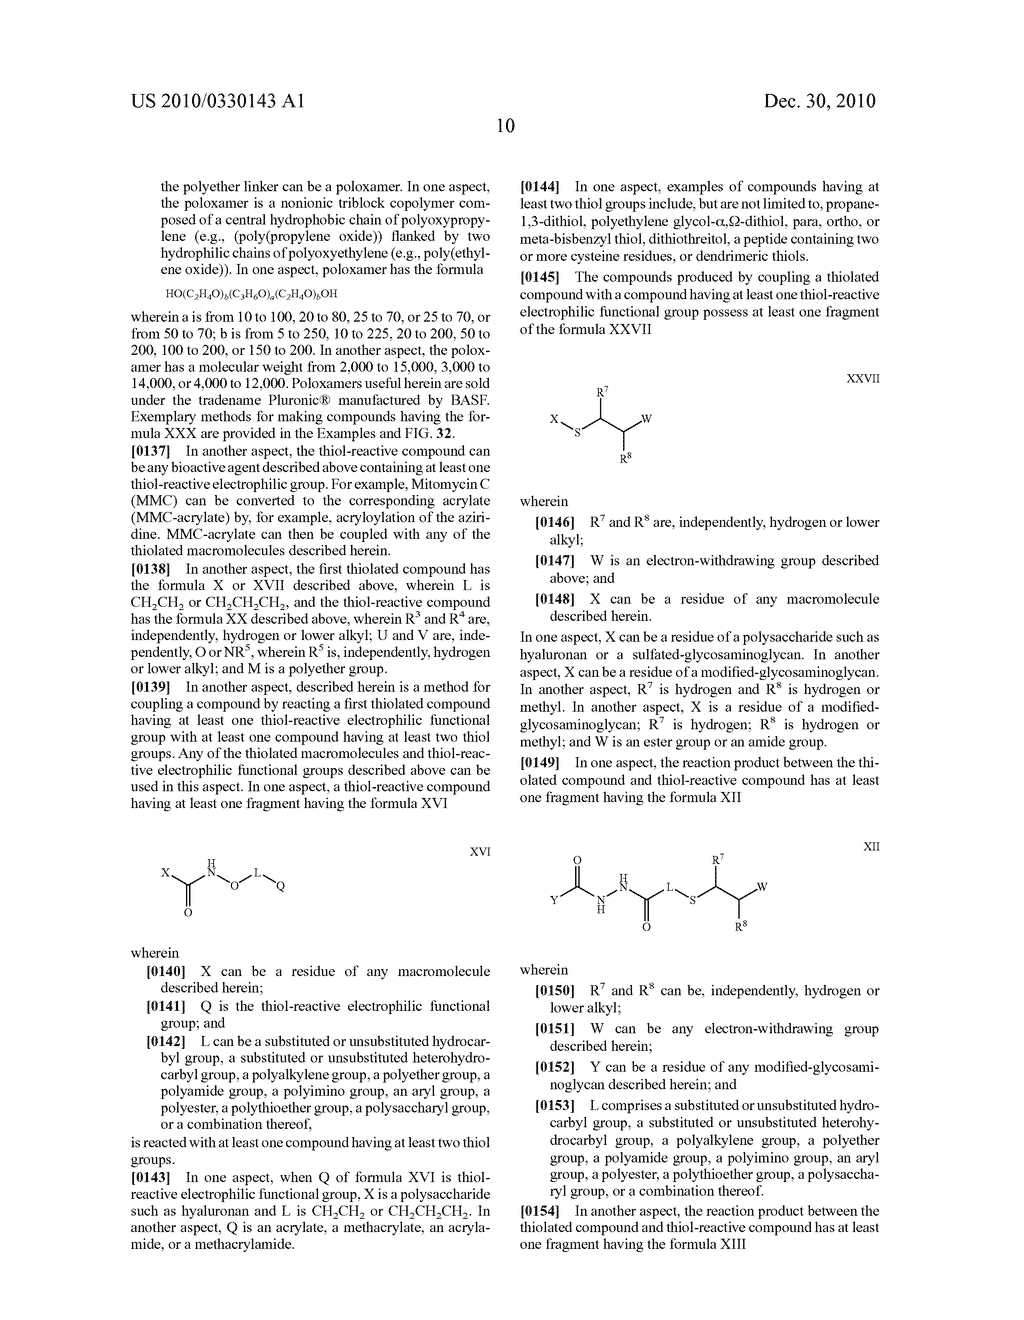 MODIFIED MACROMOLECULES AND METHODS OF MAKING AND USING THEREOF - diagram, schematic, and image 46